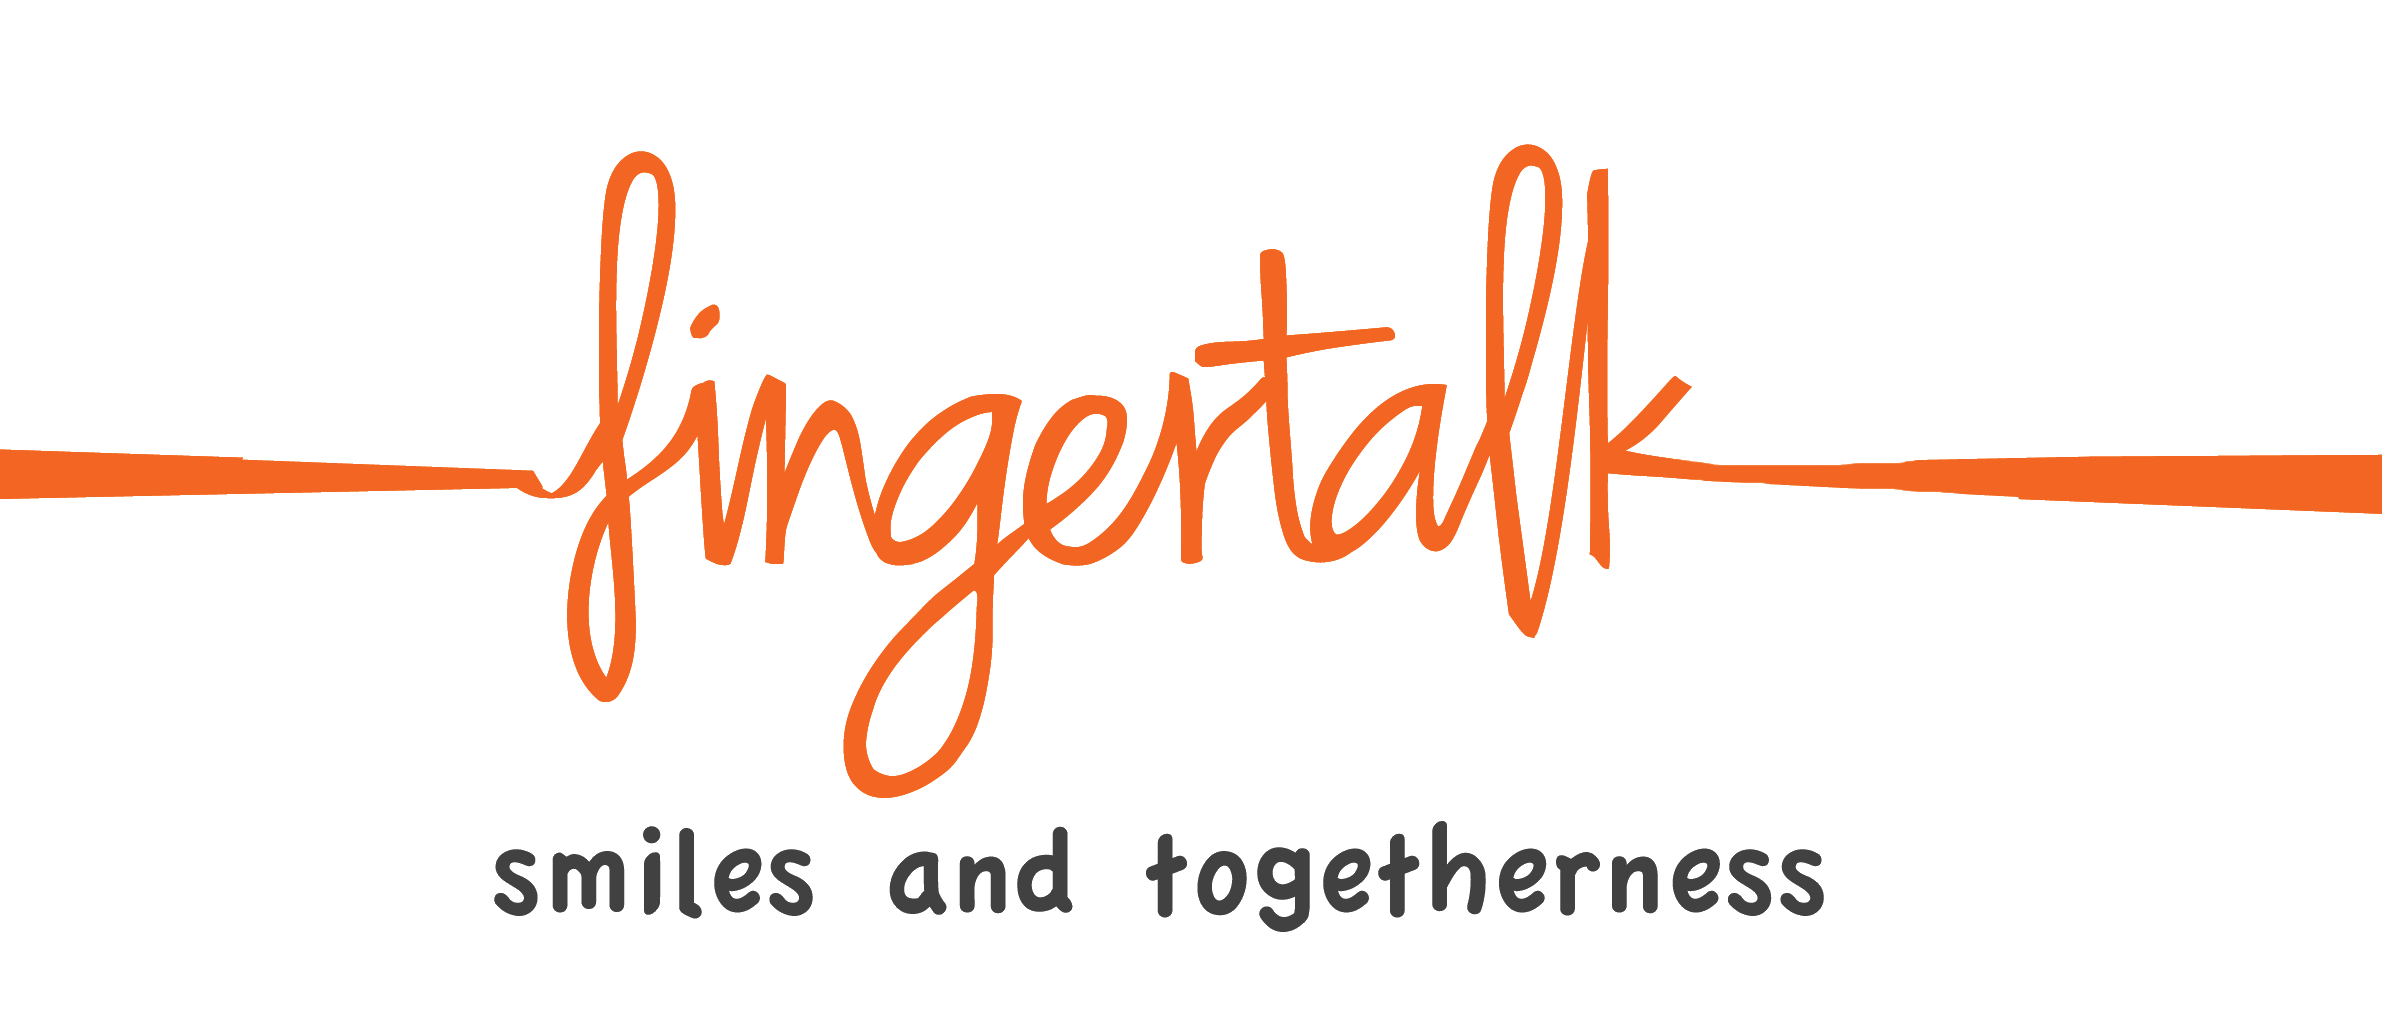 Fingertalk